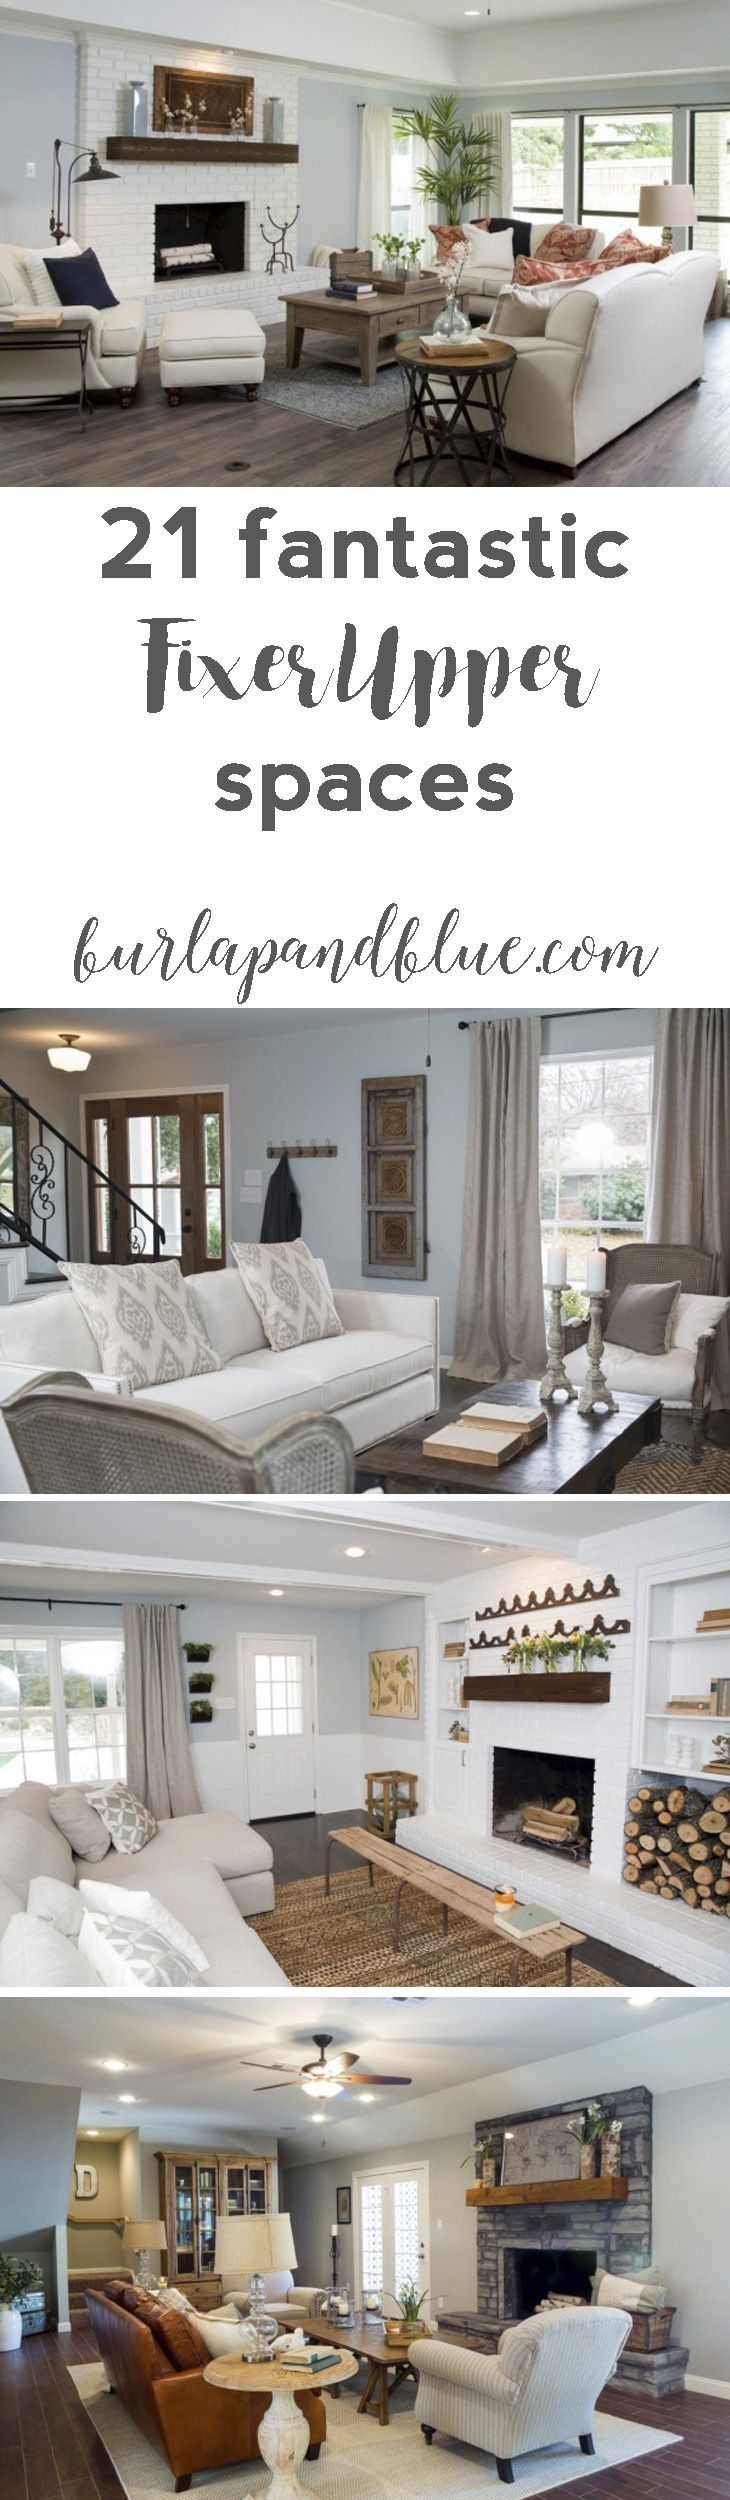 my very favorite Fixer Upper spaces! If you love the rustic, farmhouse style of chip and joanna gaines, you'll love this roundup of my favorite Fixer Upper spaces!